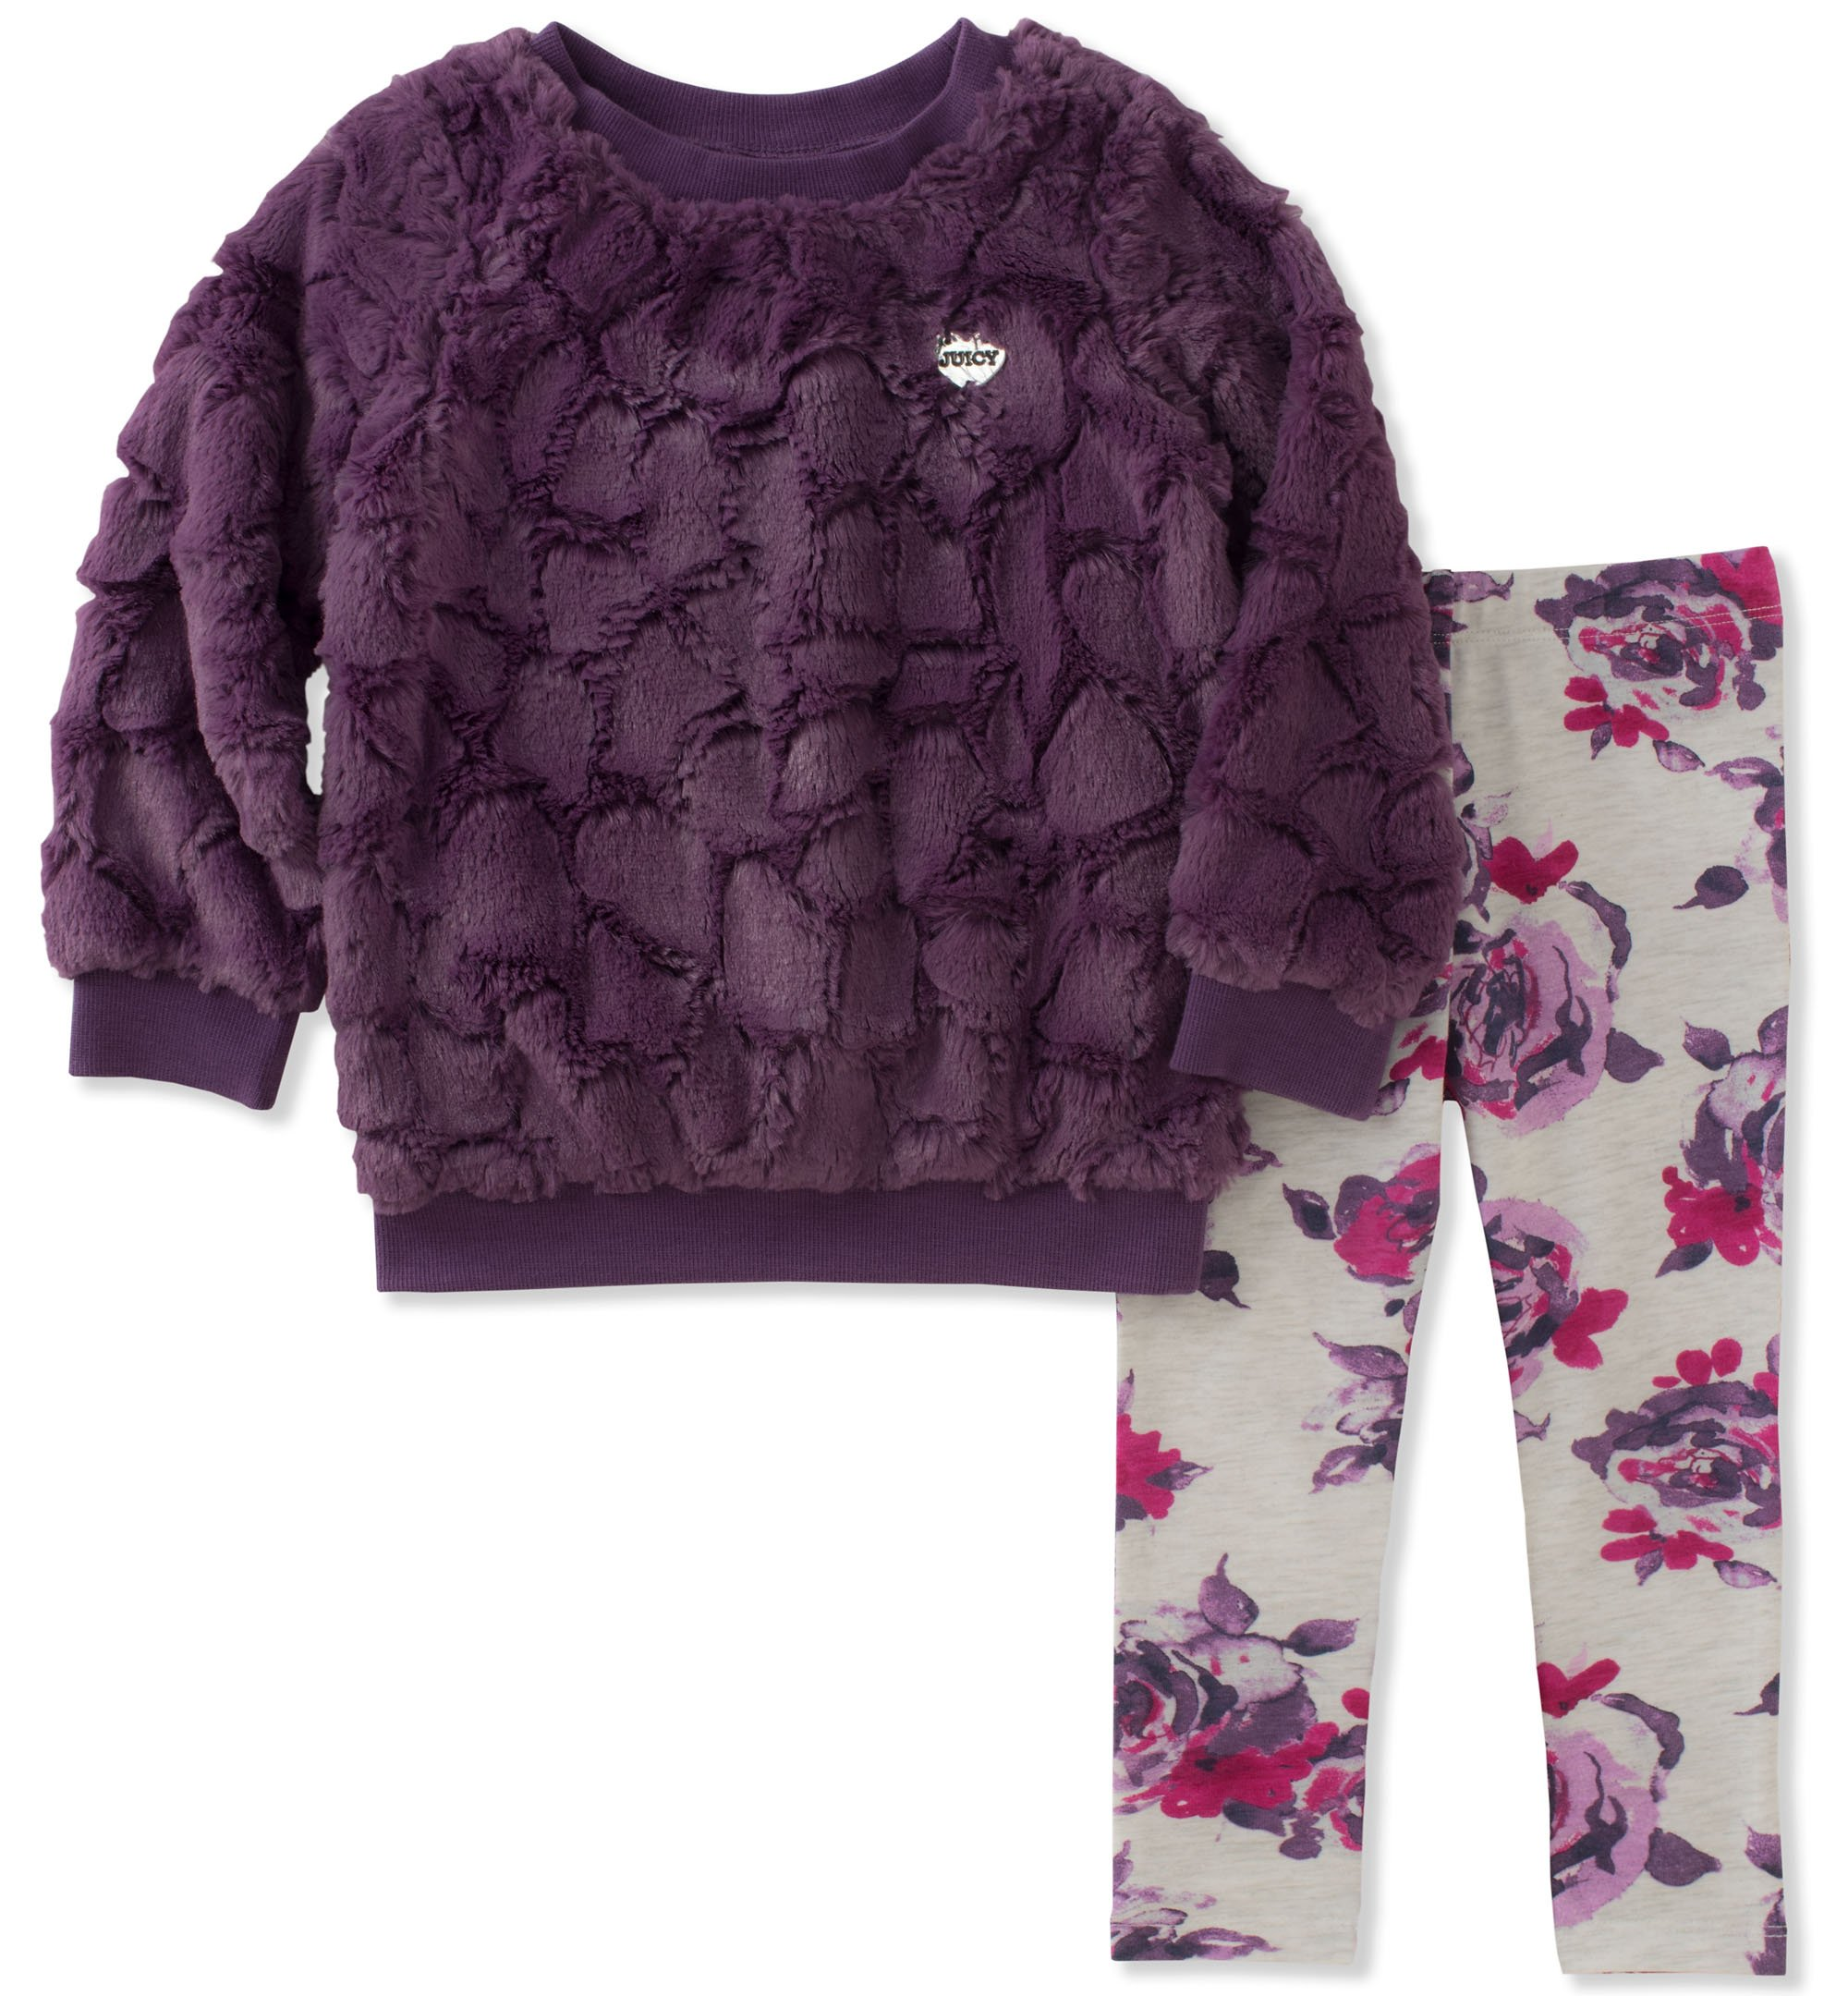 Juicy Couture Toddler Girls' Faux Fur Pant Sets, Country Plum/Print, 3T